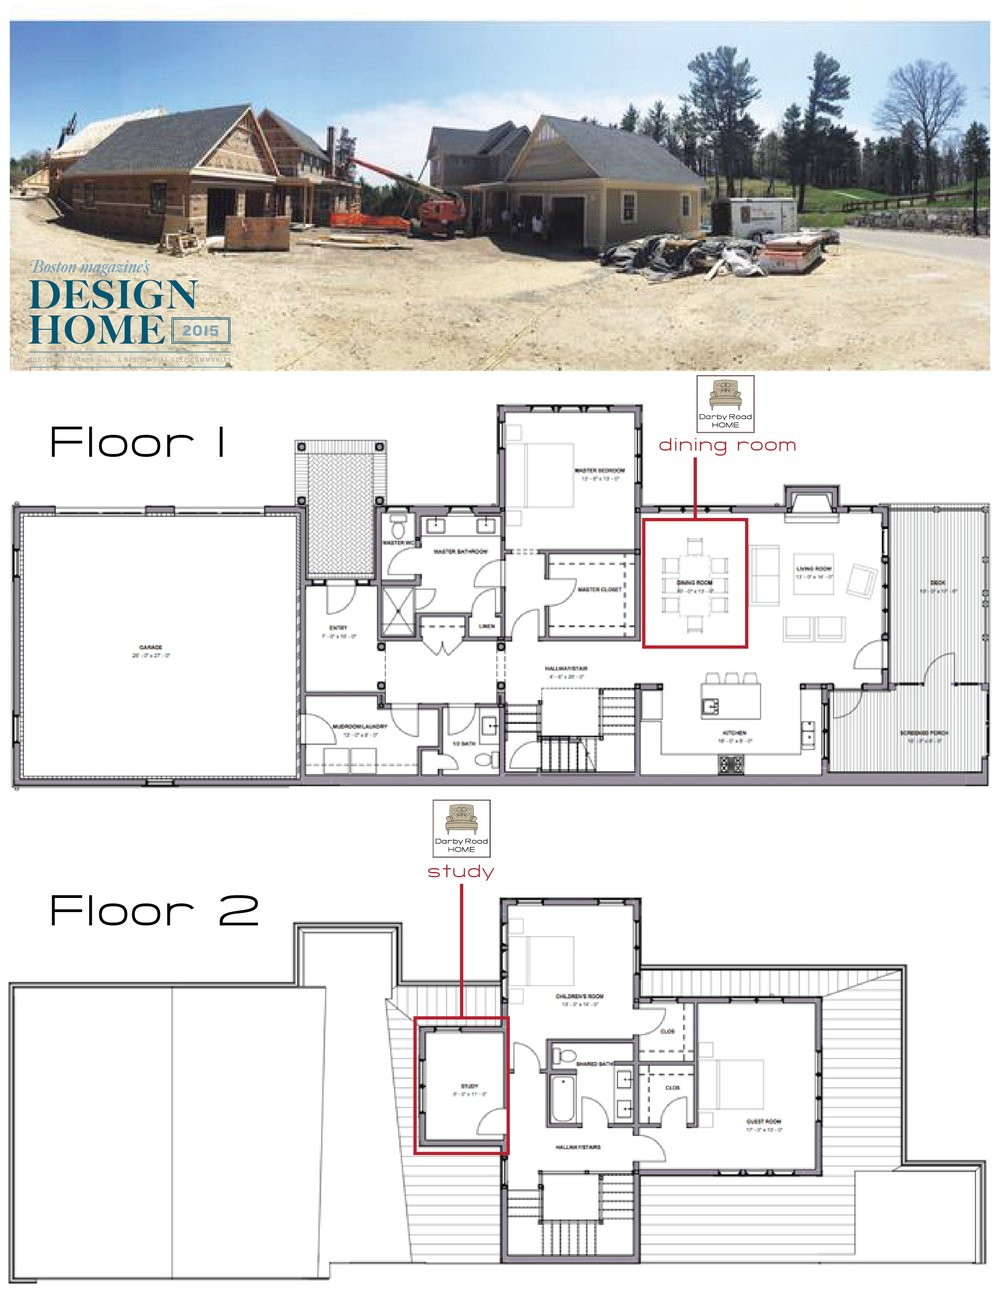 design_home_floorplan-01.jpeg